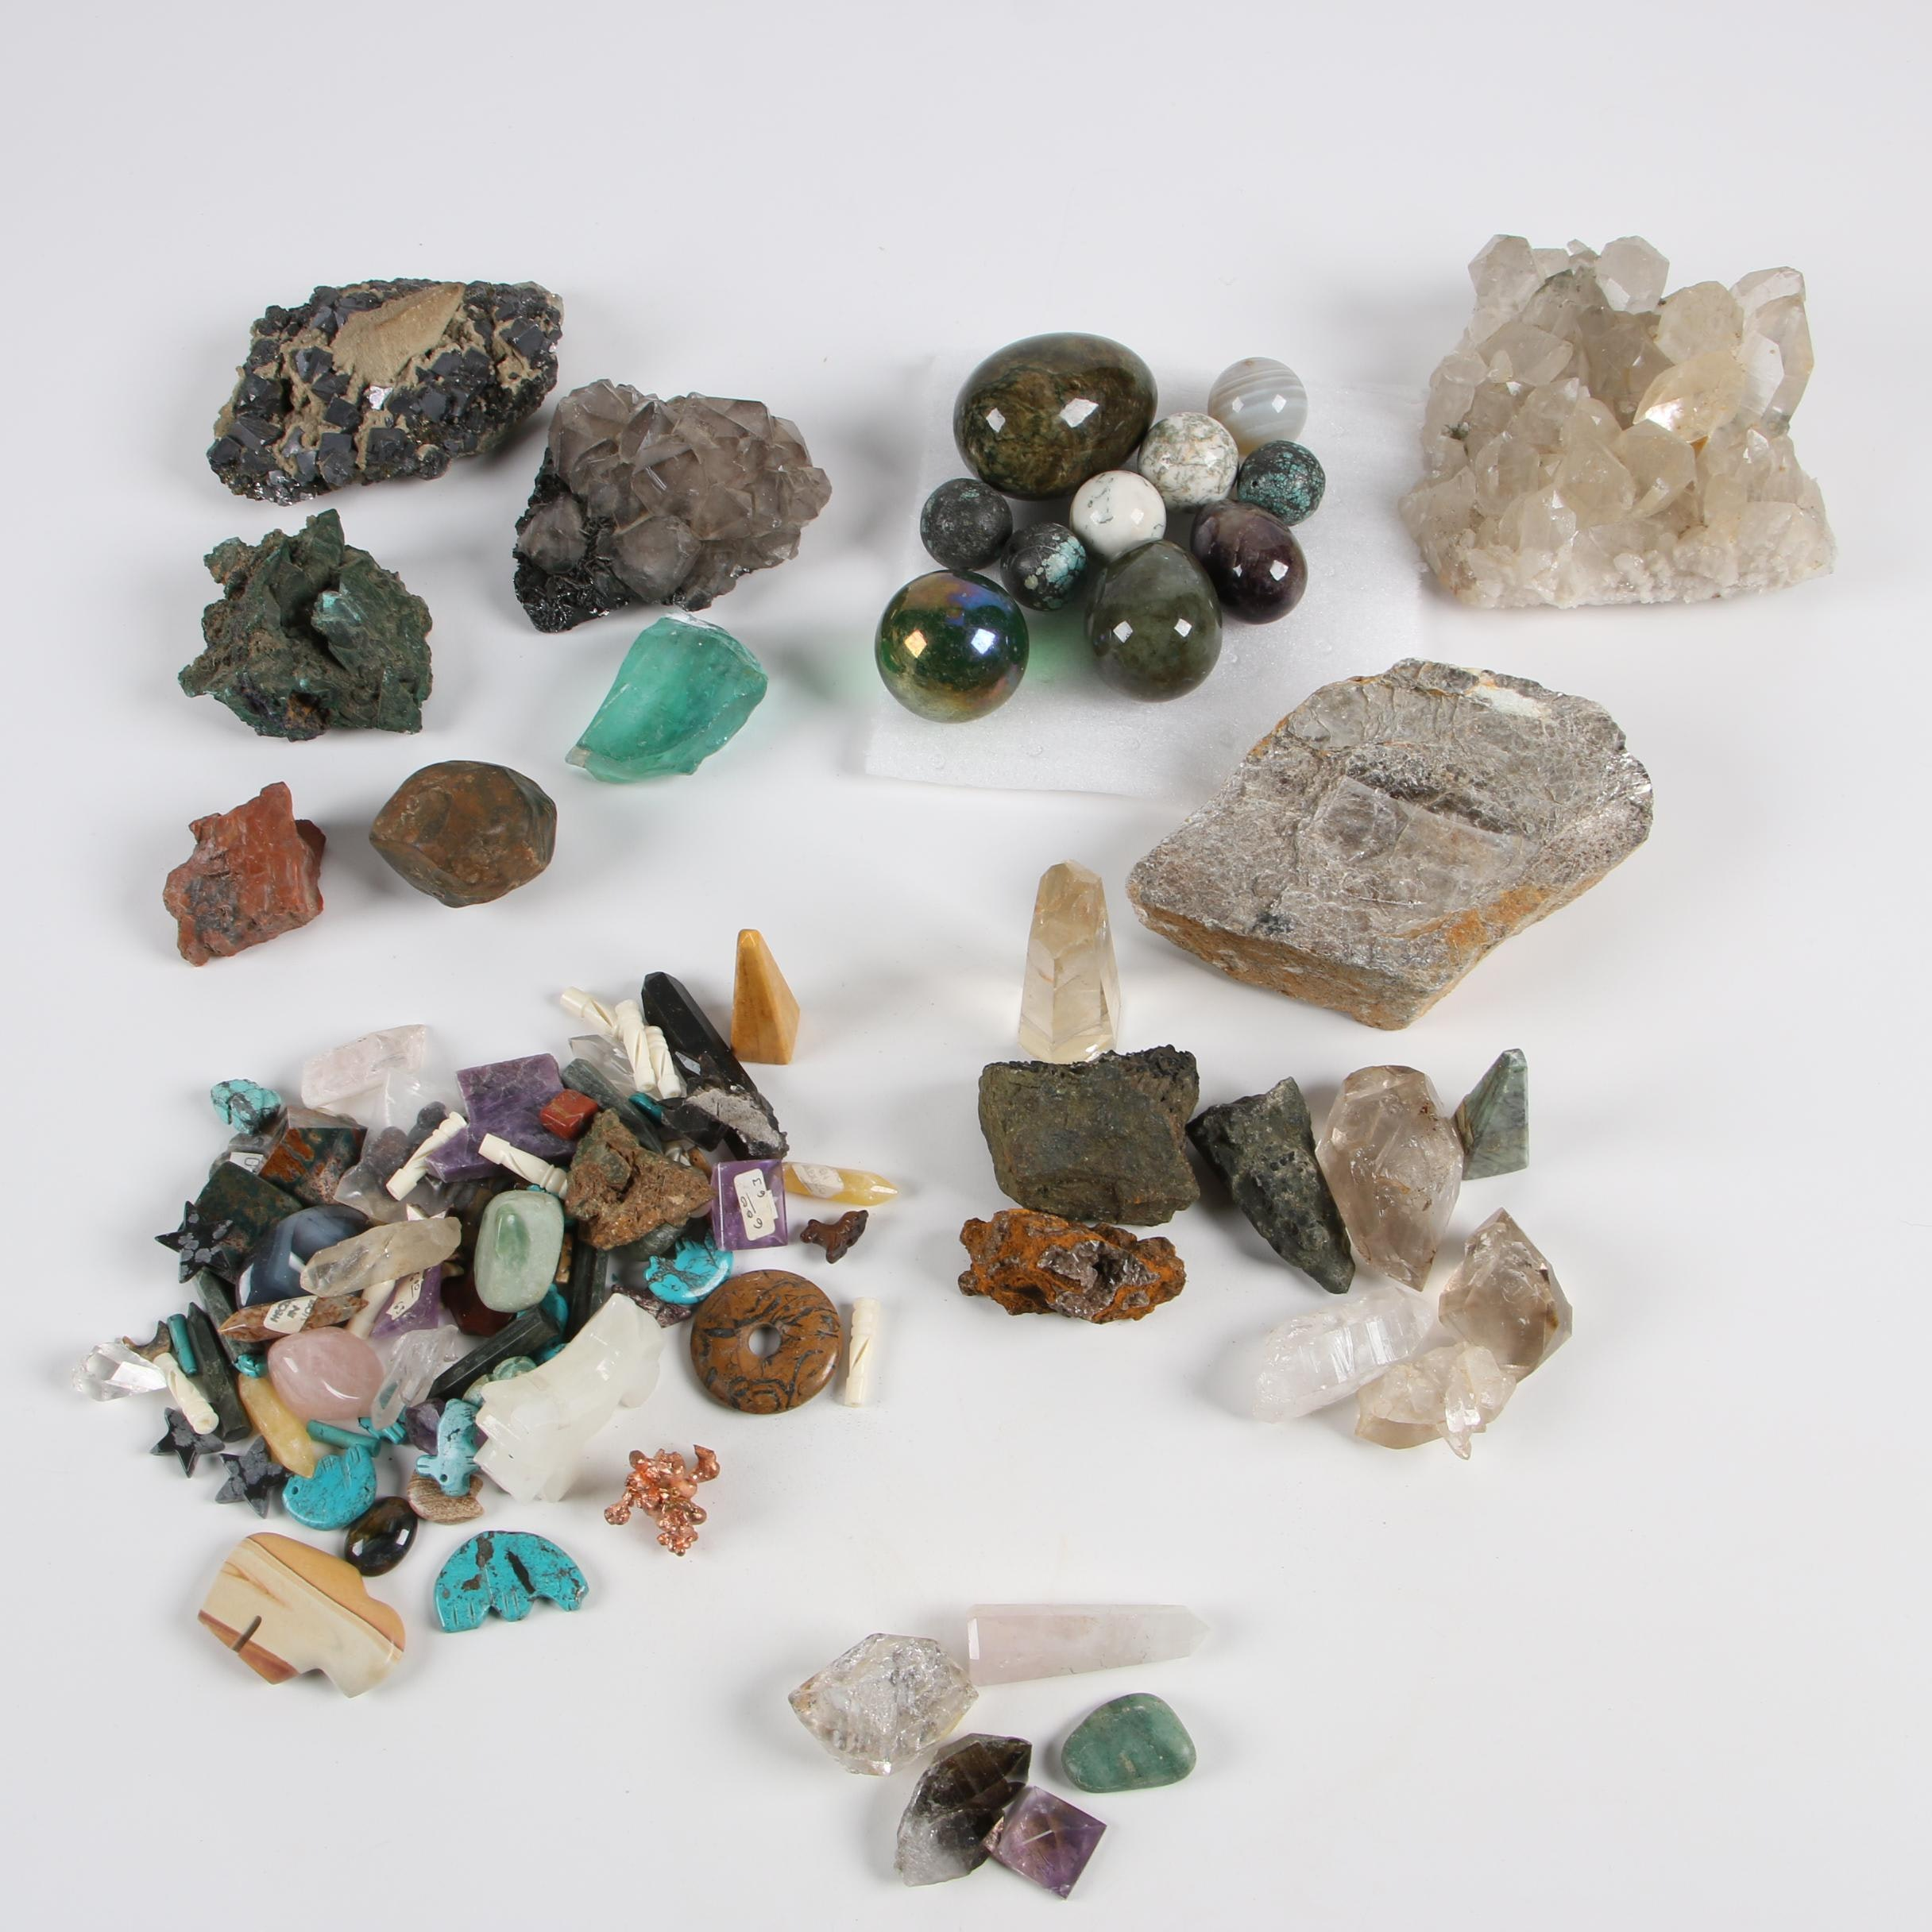 Polished Stone Eggs, Stone Beads, and Other Mineral Specimens